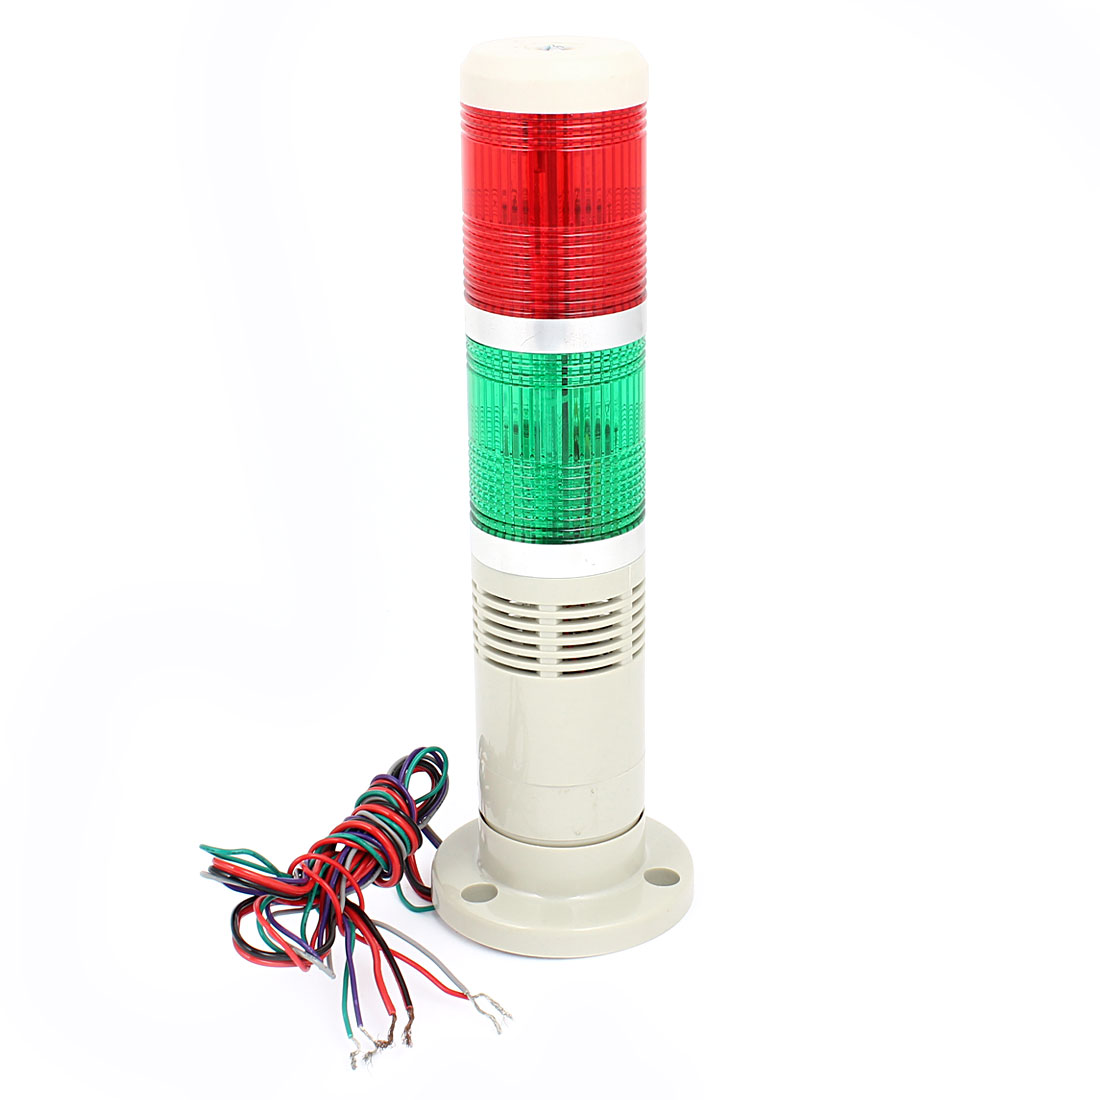 Red Green Flash Industrial Signal Tower Indicator Light Bulb Buzzer 90dB AC 220V